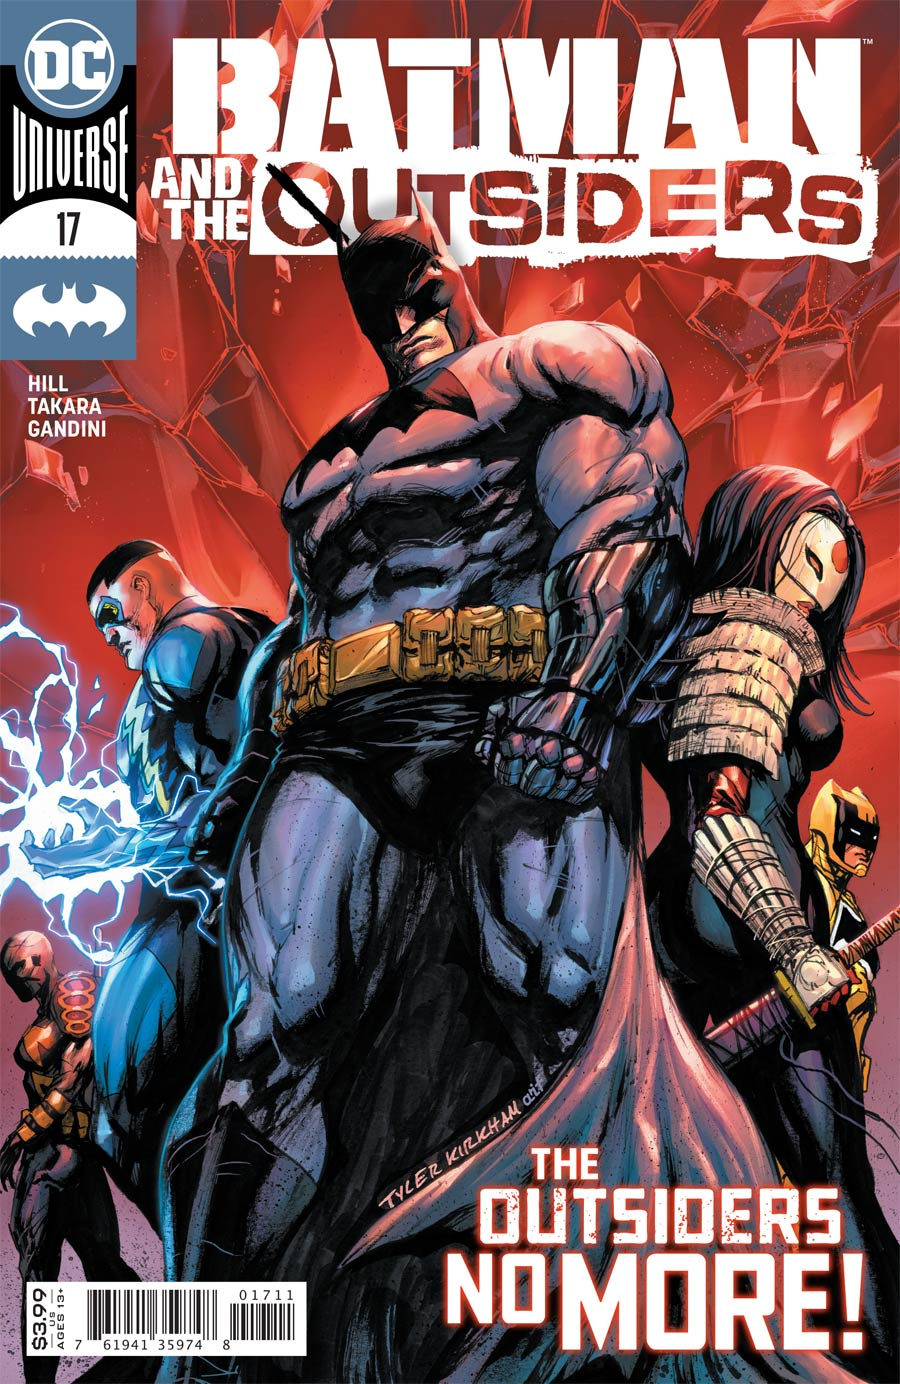 Batman And The Outsiders Vol 3 #17 Cover A Regular Tyler Kirkham Cover